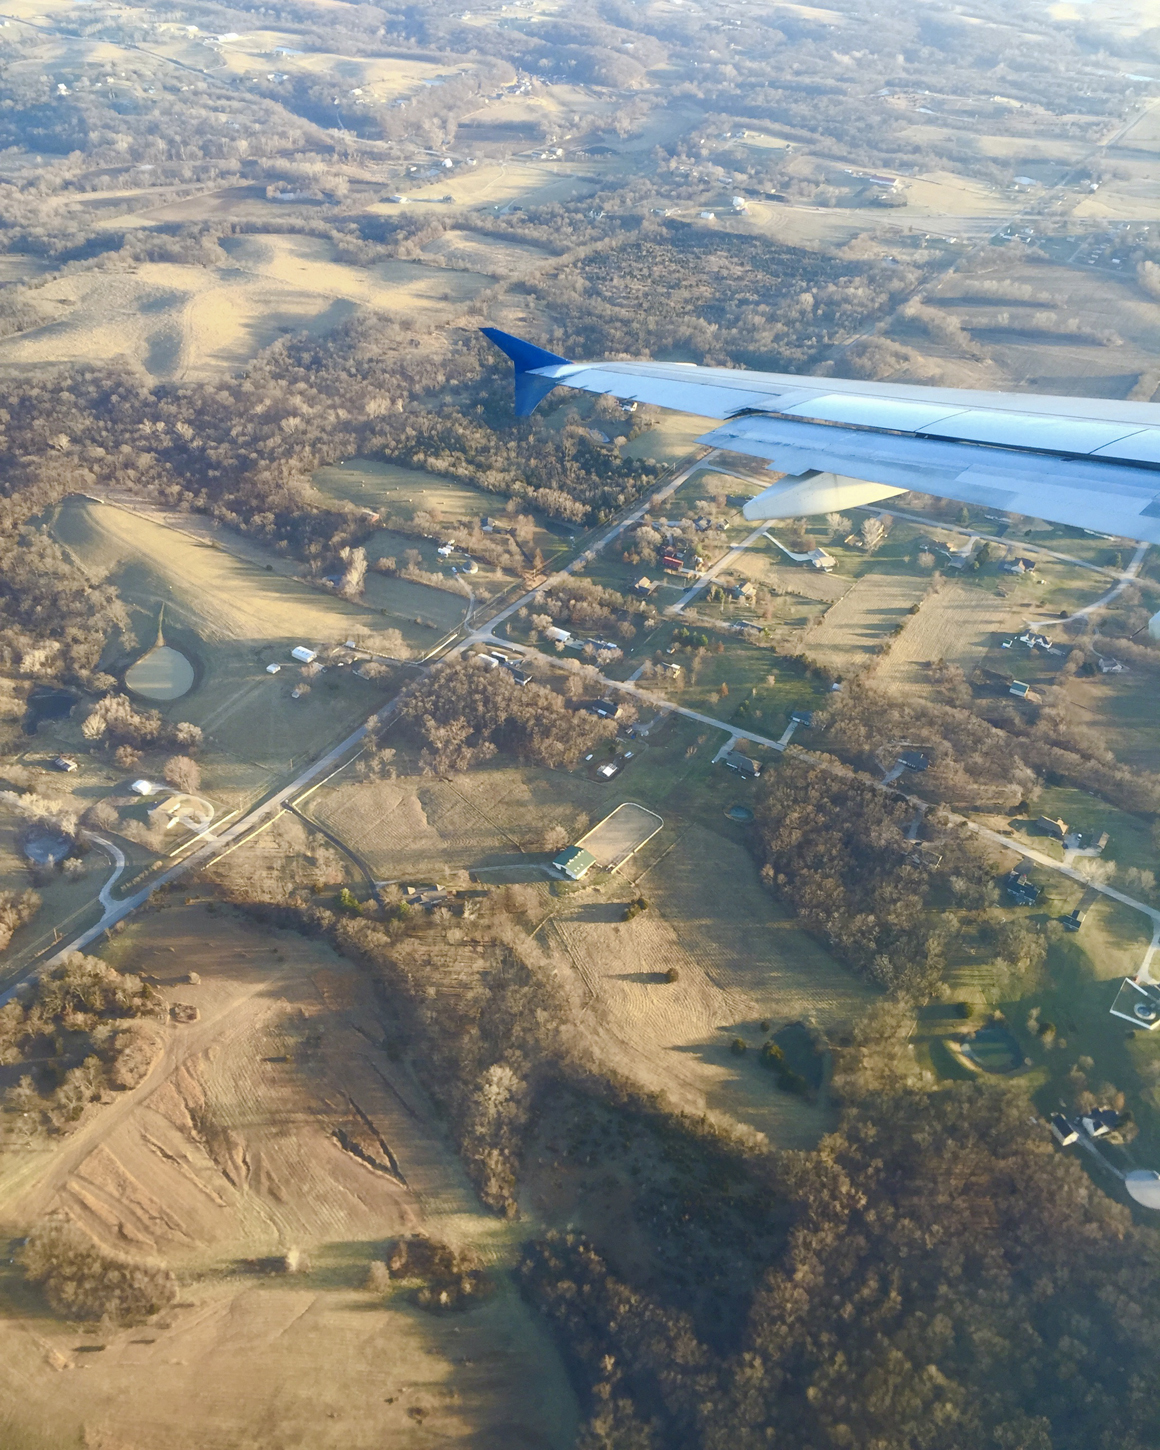 Somewhere over the midwest